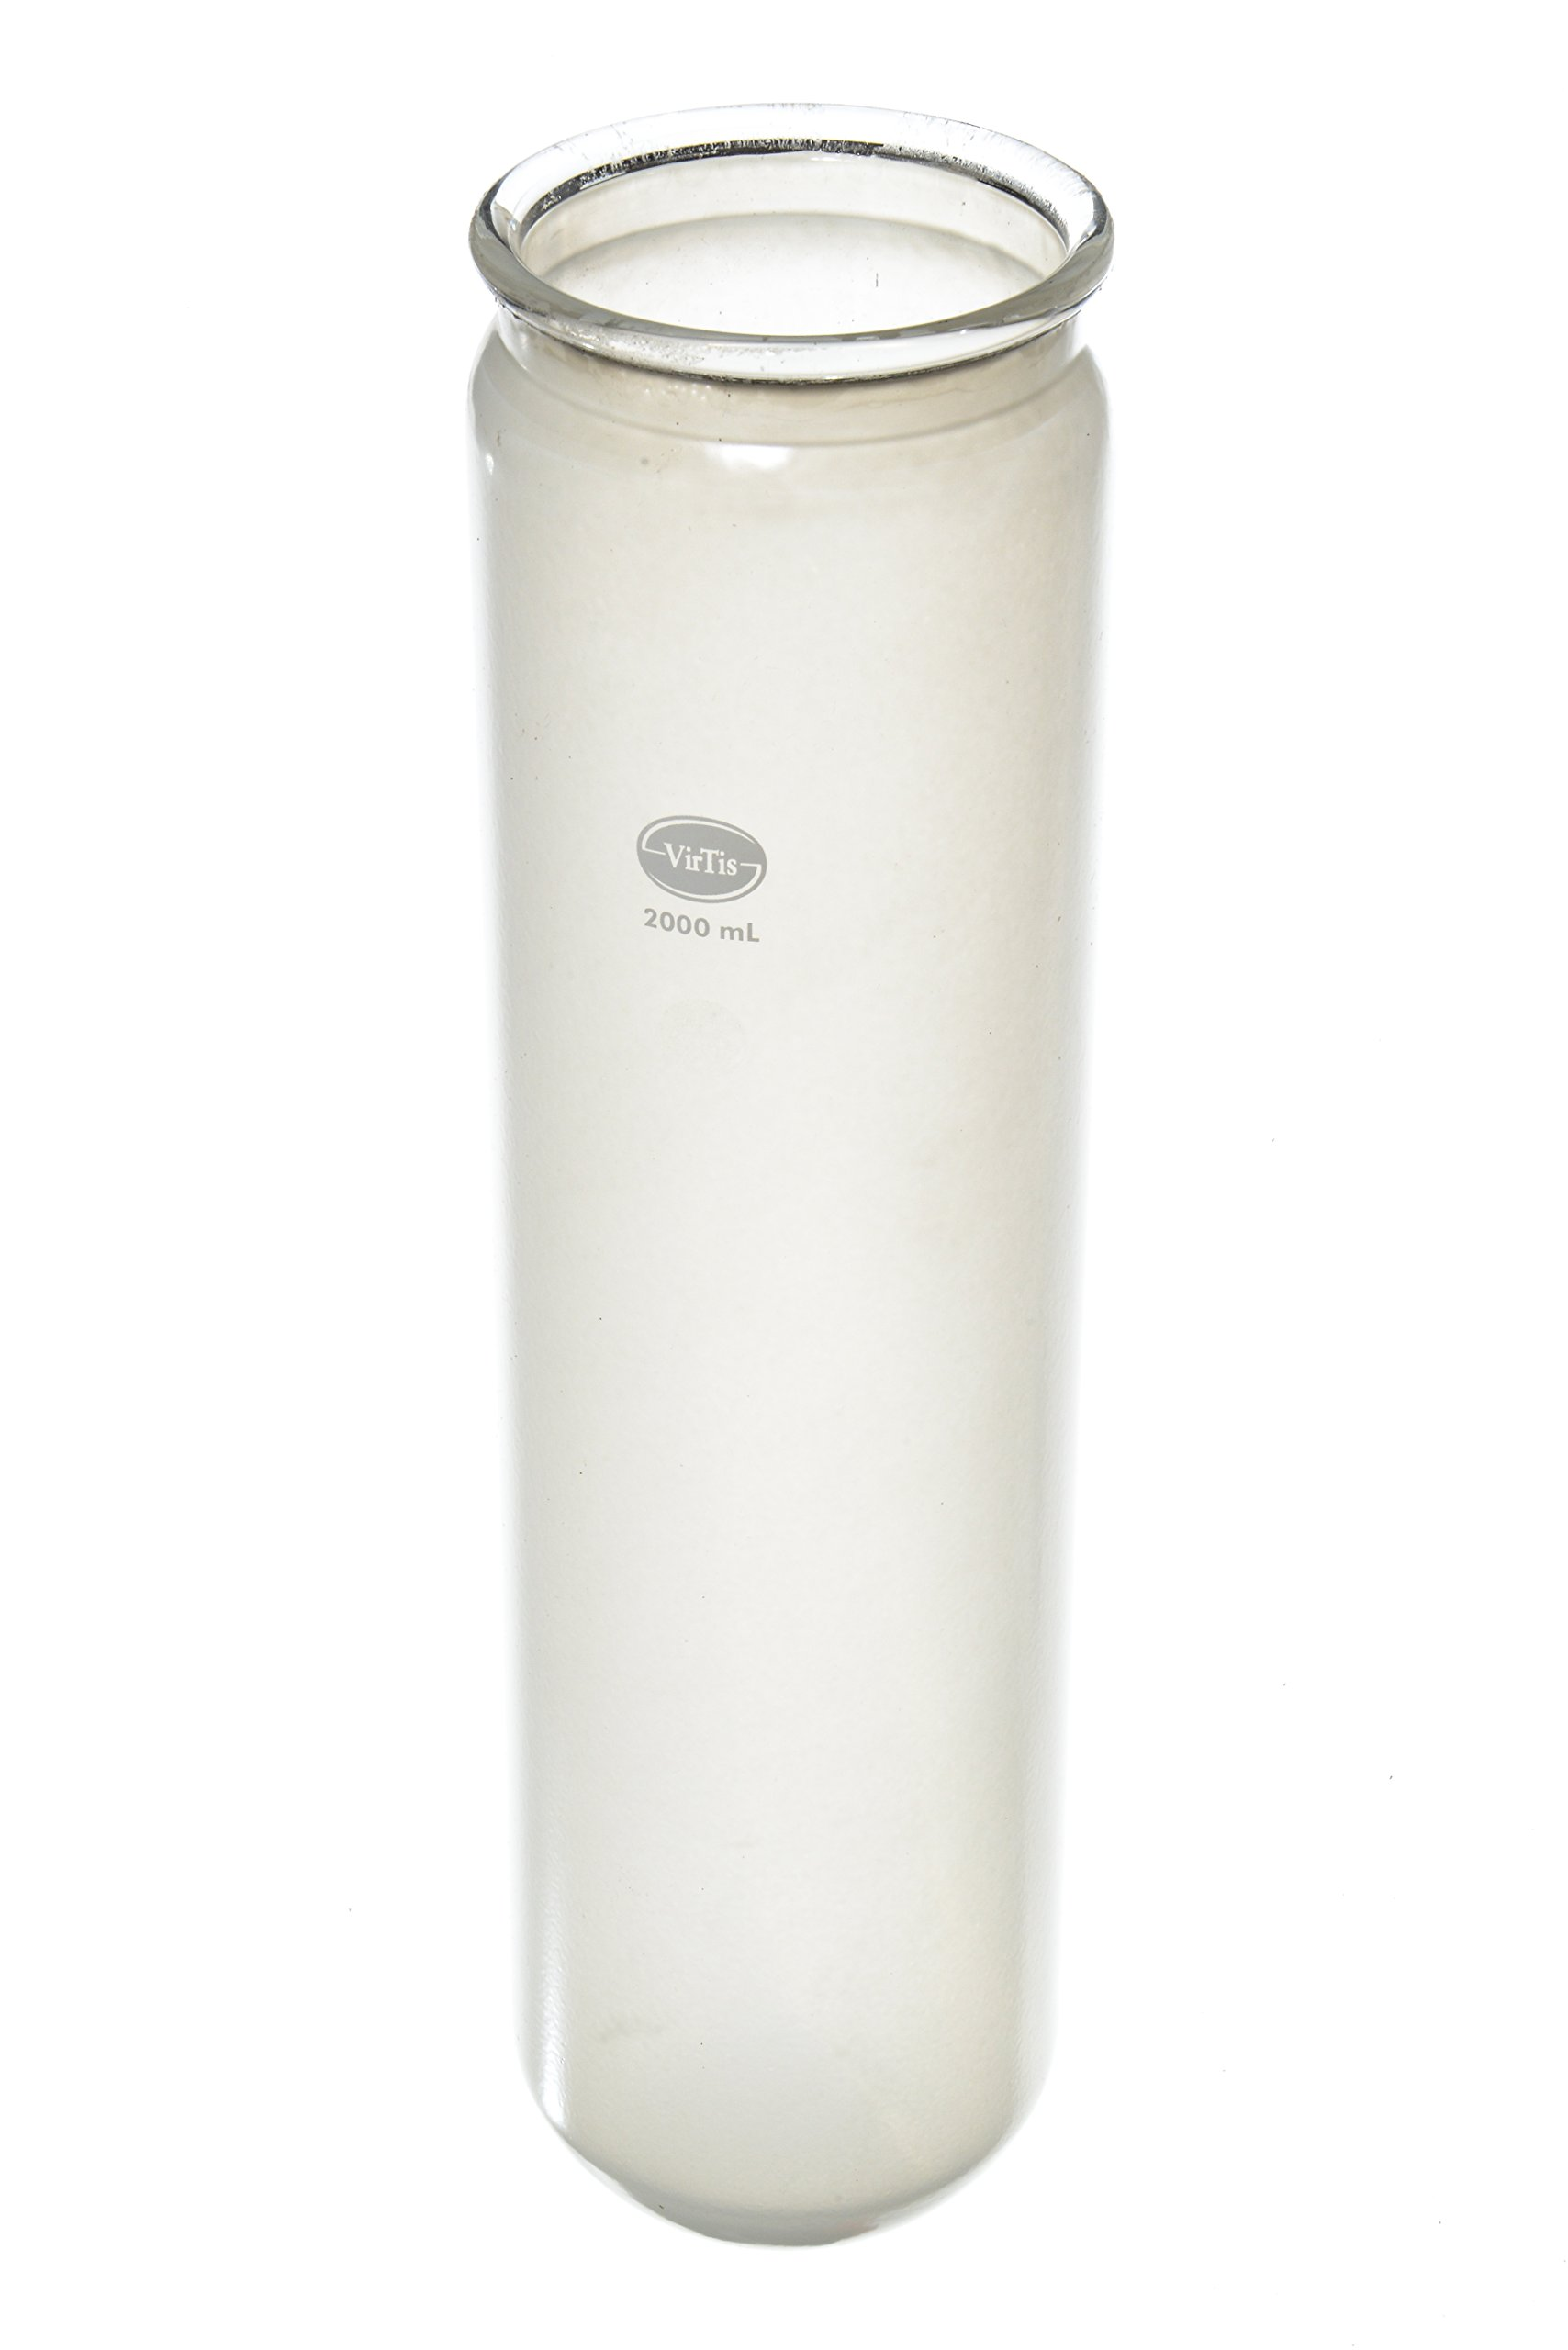 Wilmad LG-13100-512 Freeze Drying Flask, Safety Coated, 2000 Capacity